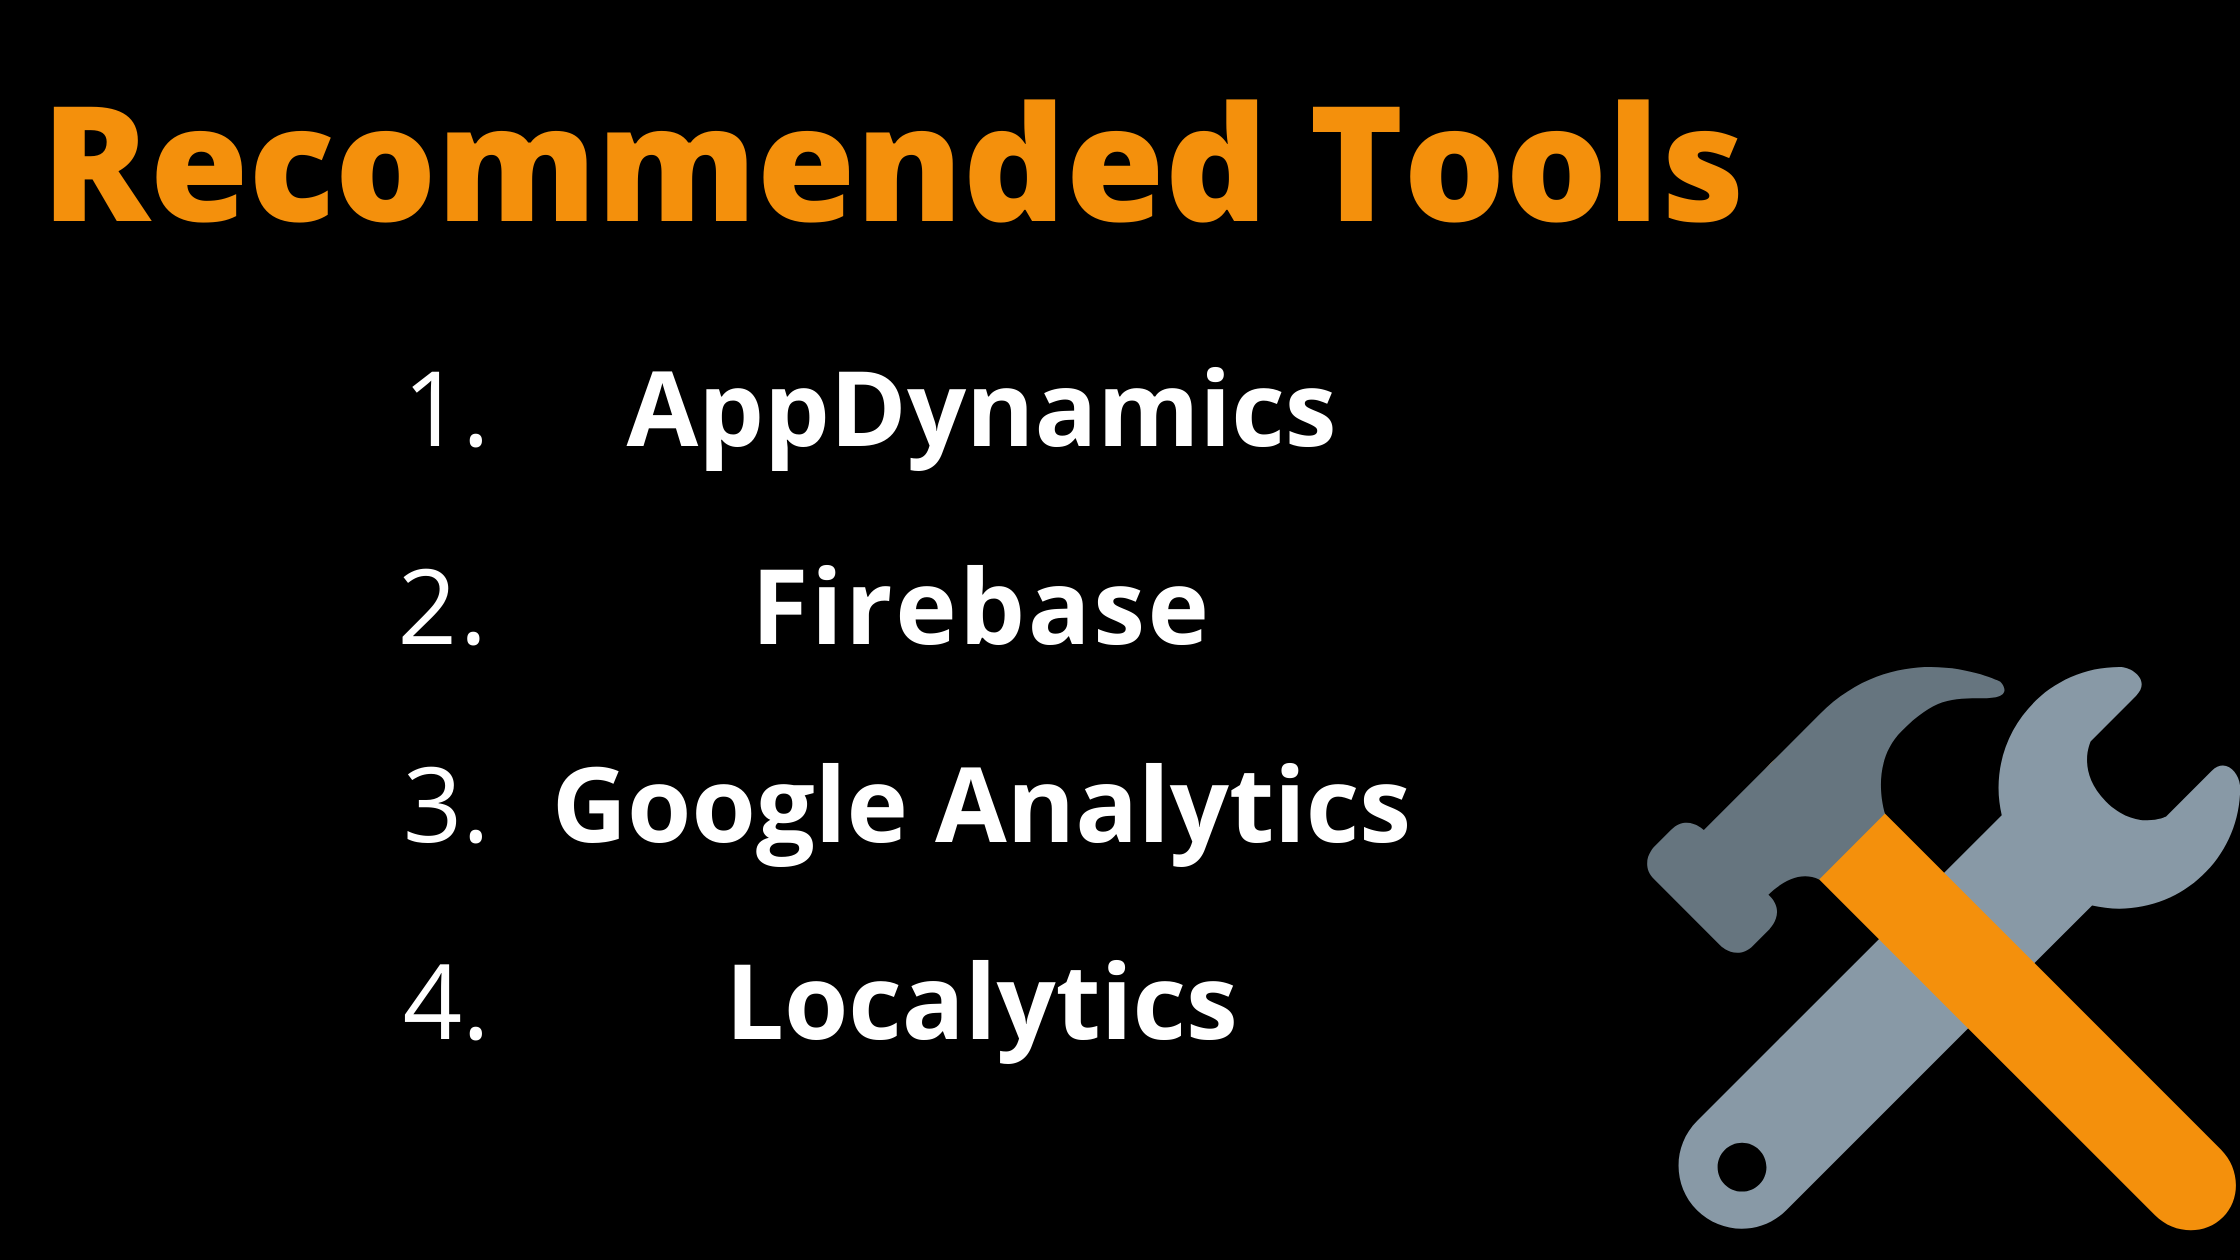 Recommended tools for App Analytics